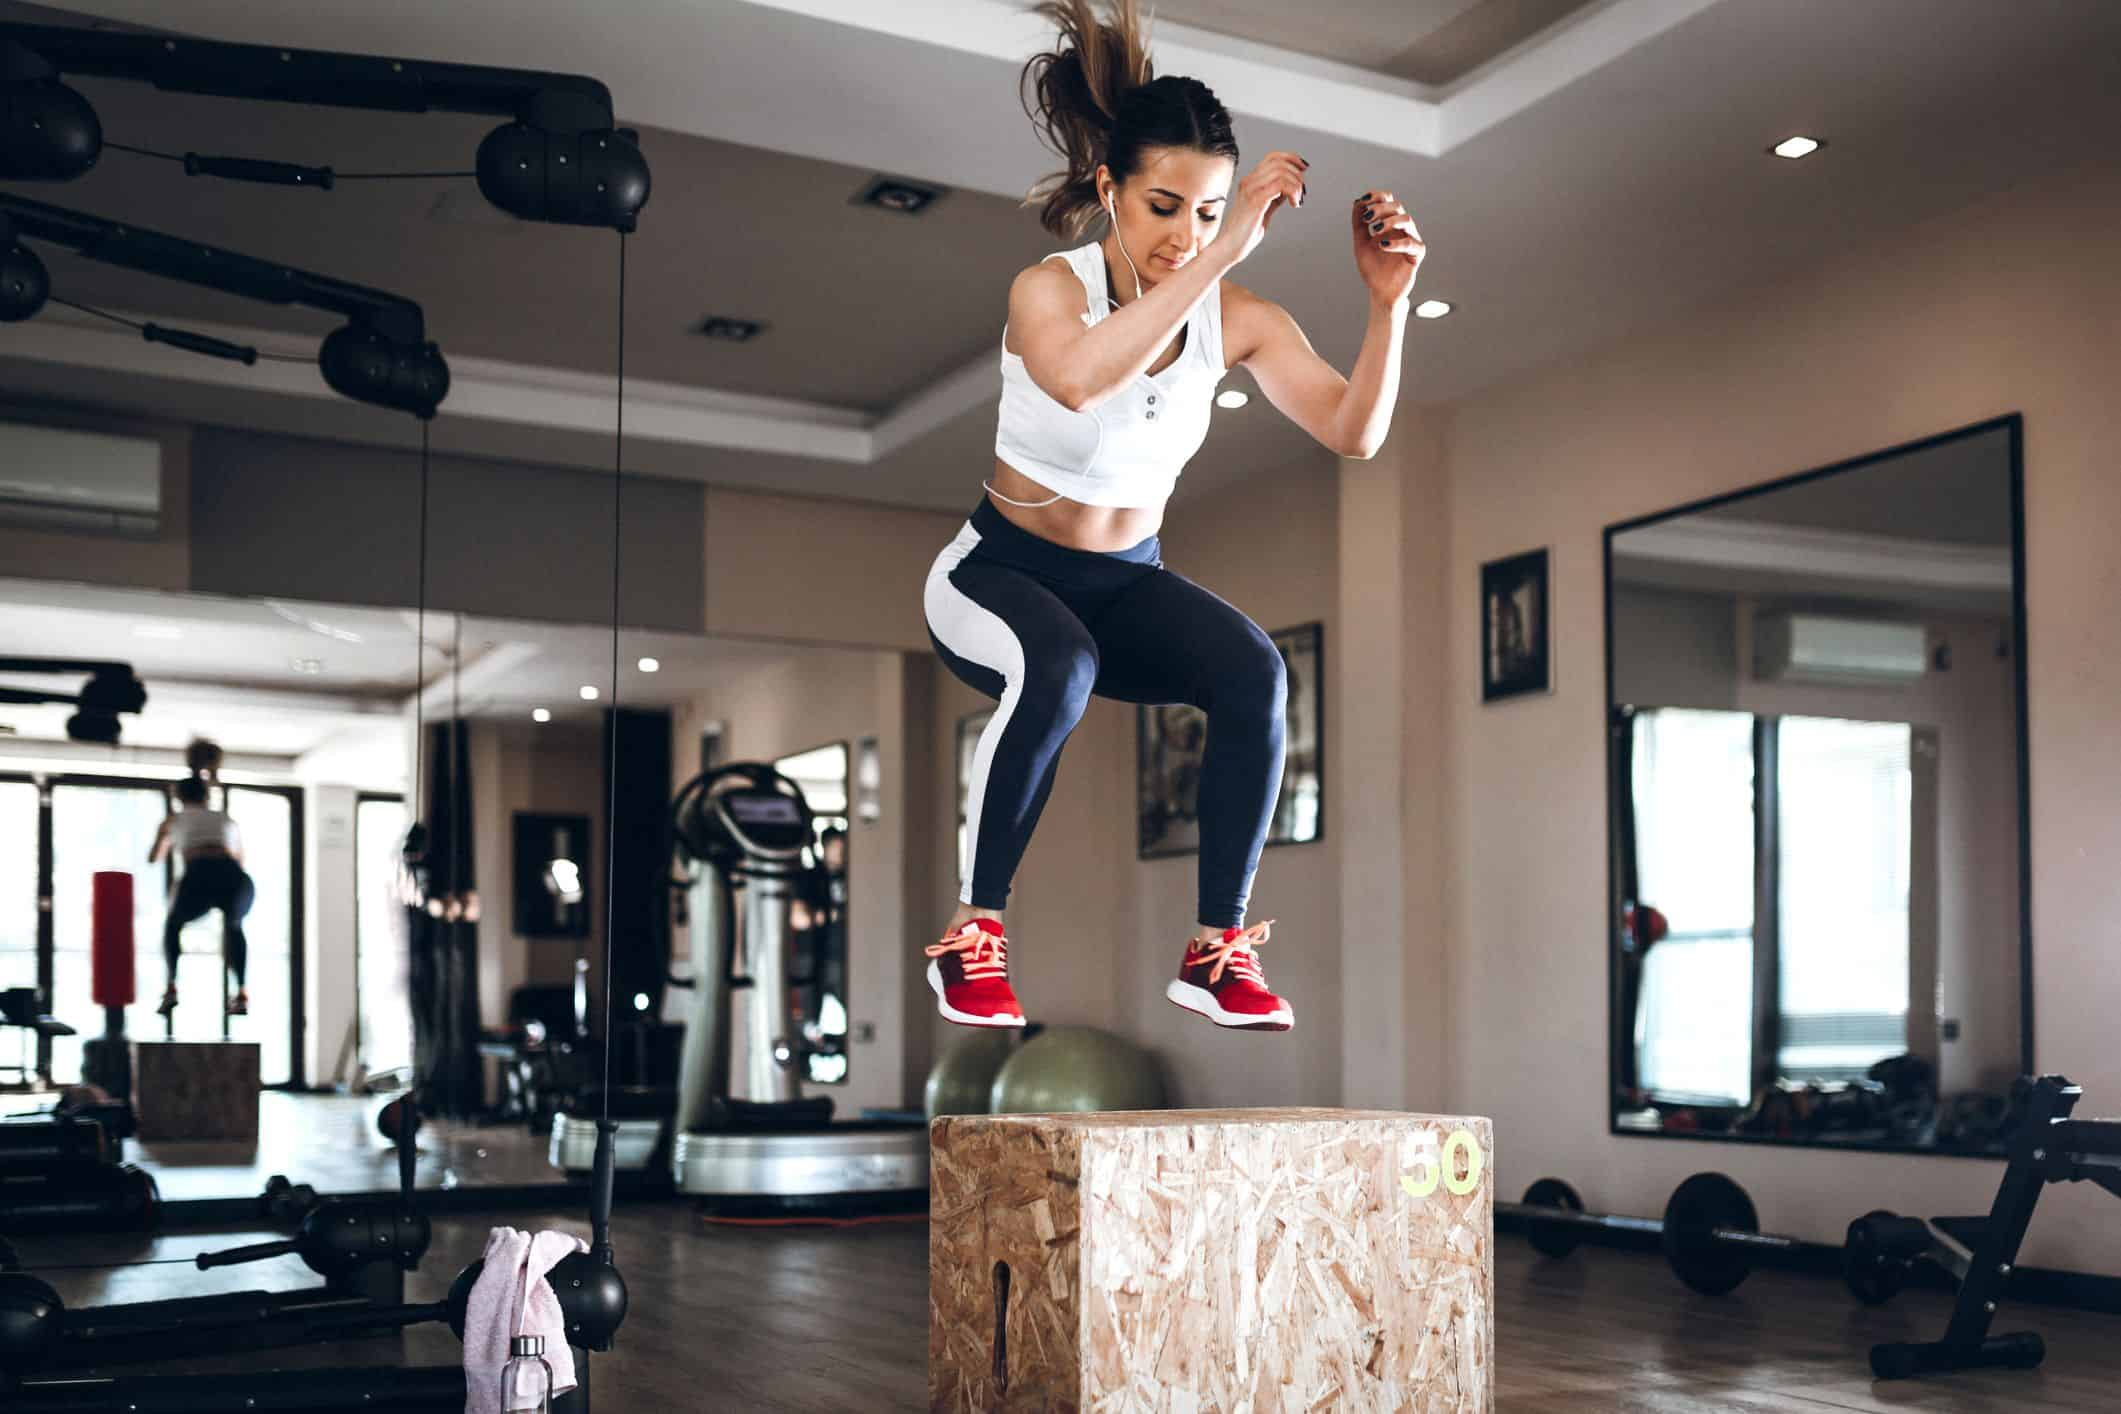 woman-working-out-royalty-free-image-1031113600-1548866917